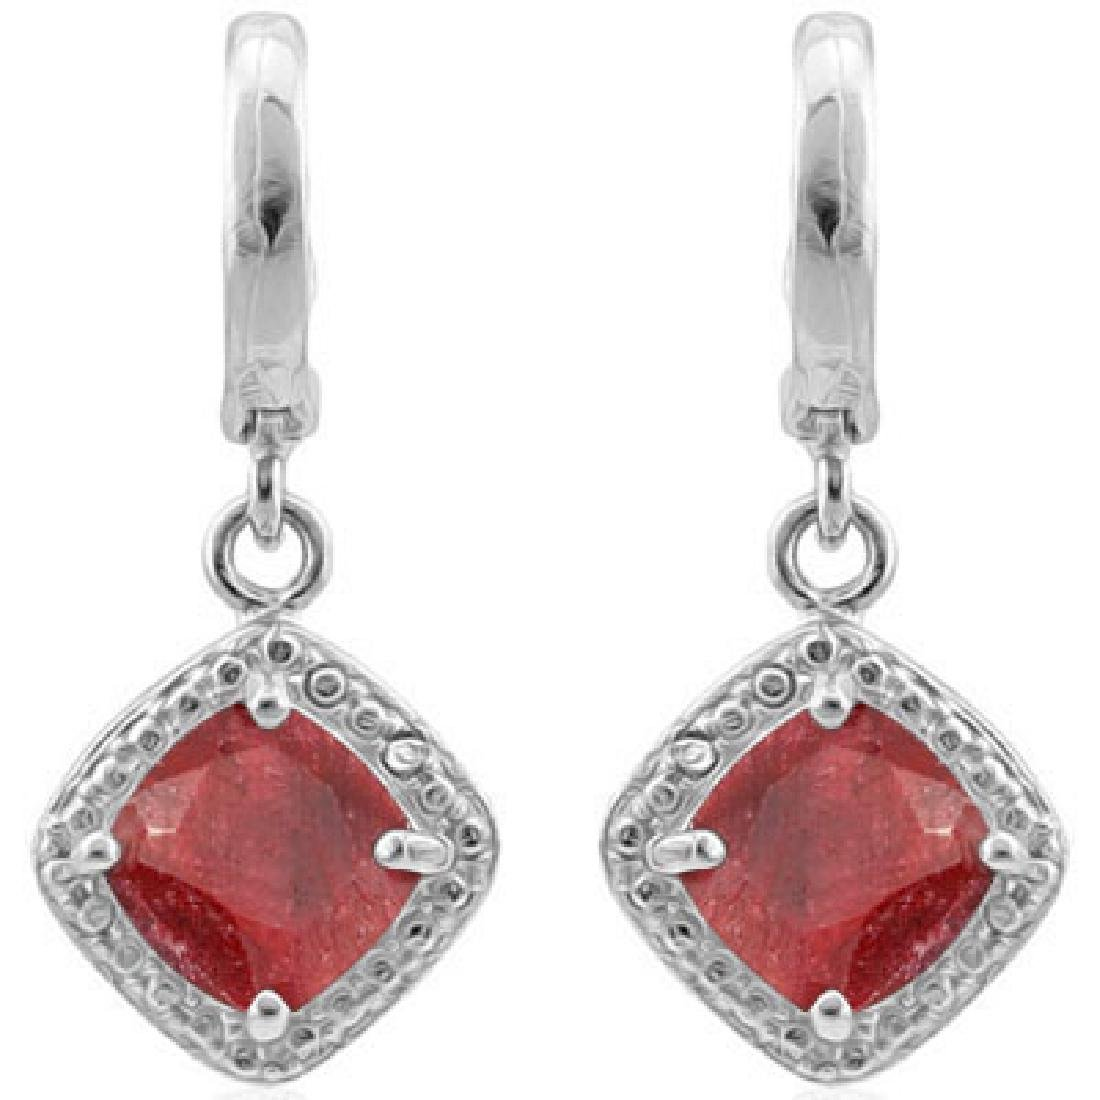 STERLING SILVER DIAMOND AND RUBY STERLING EARRINGS